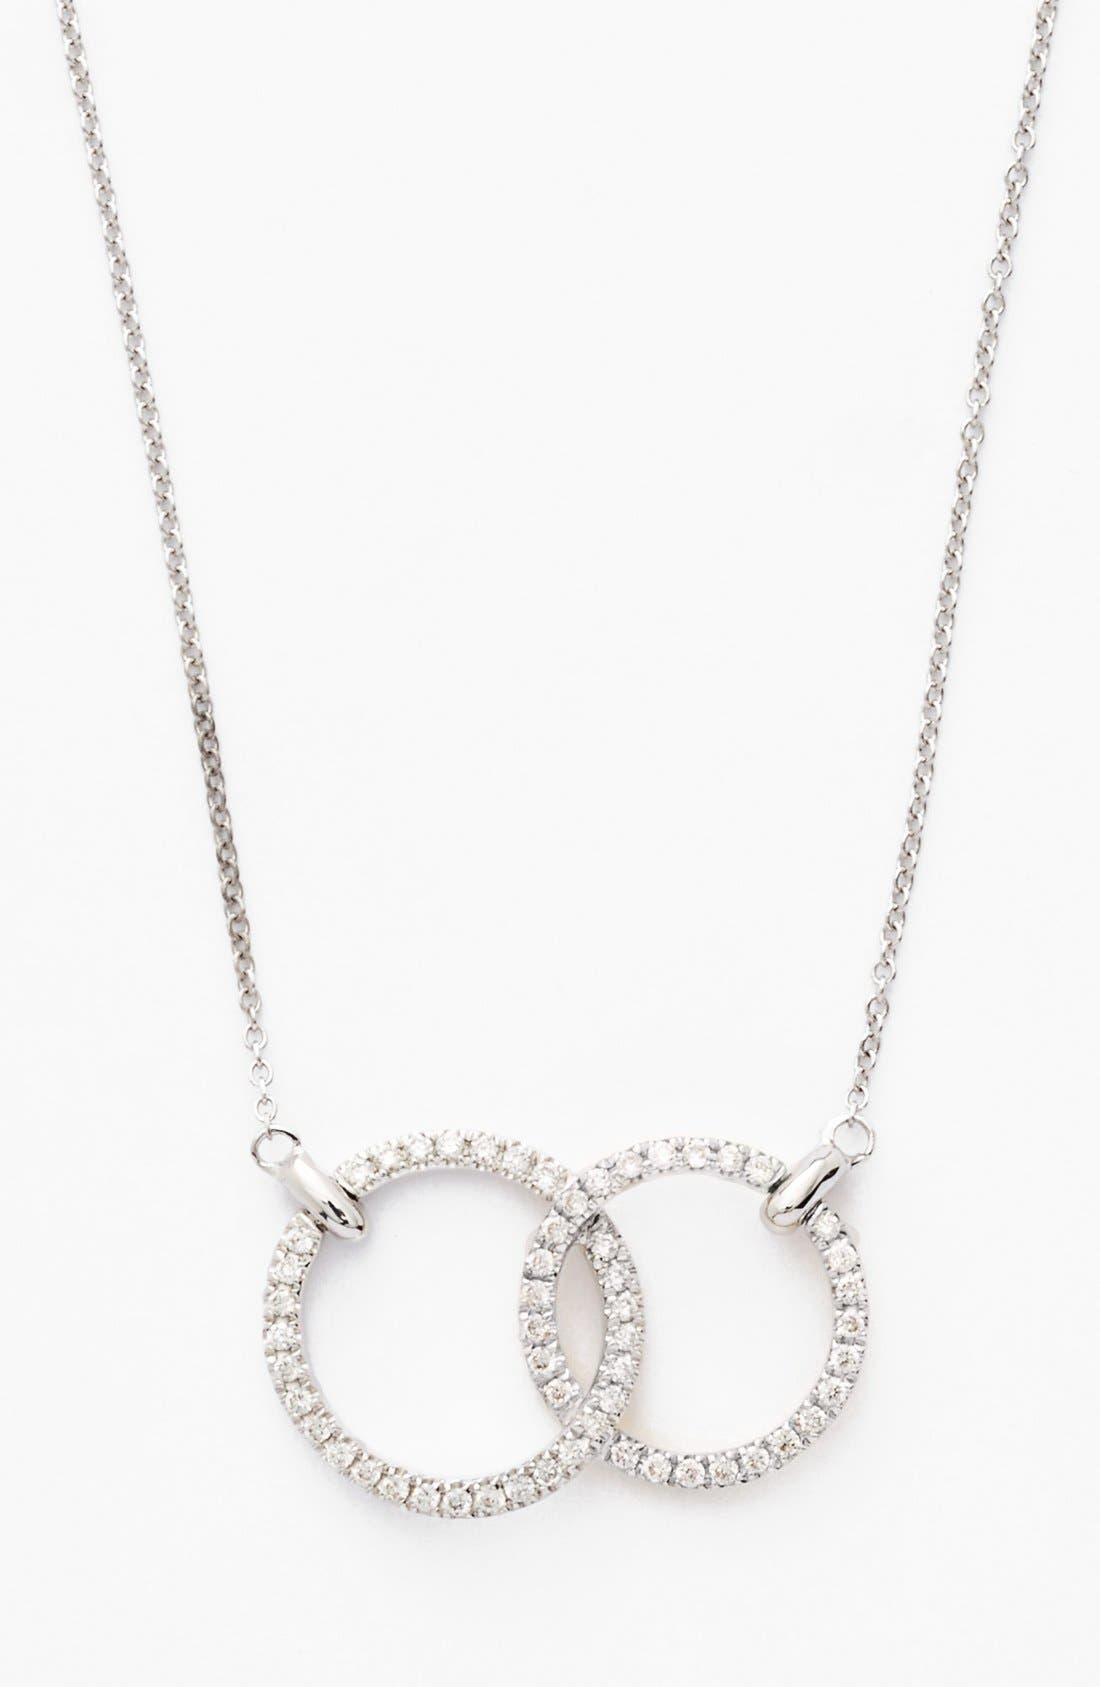 Double Diamond Circle Pendant Necklace,                         Main,                         color, White Gold